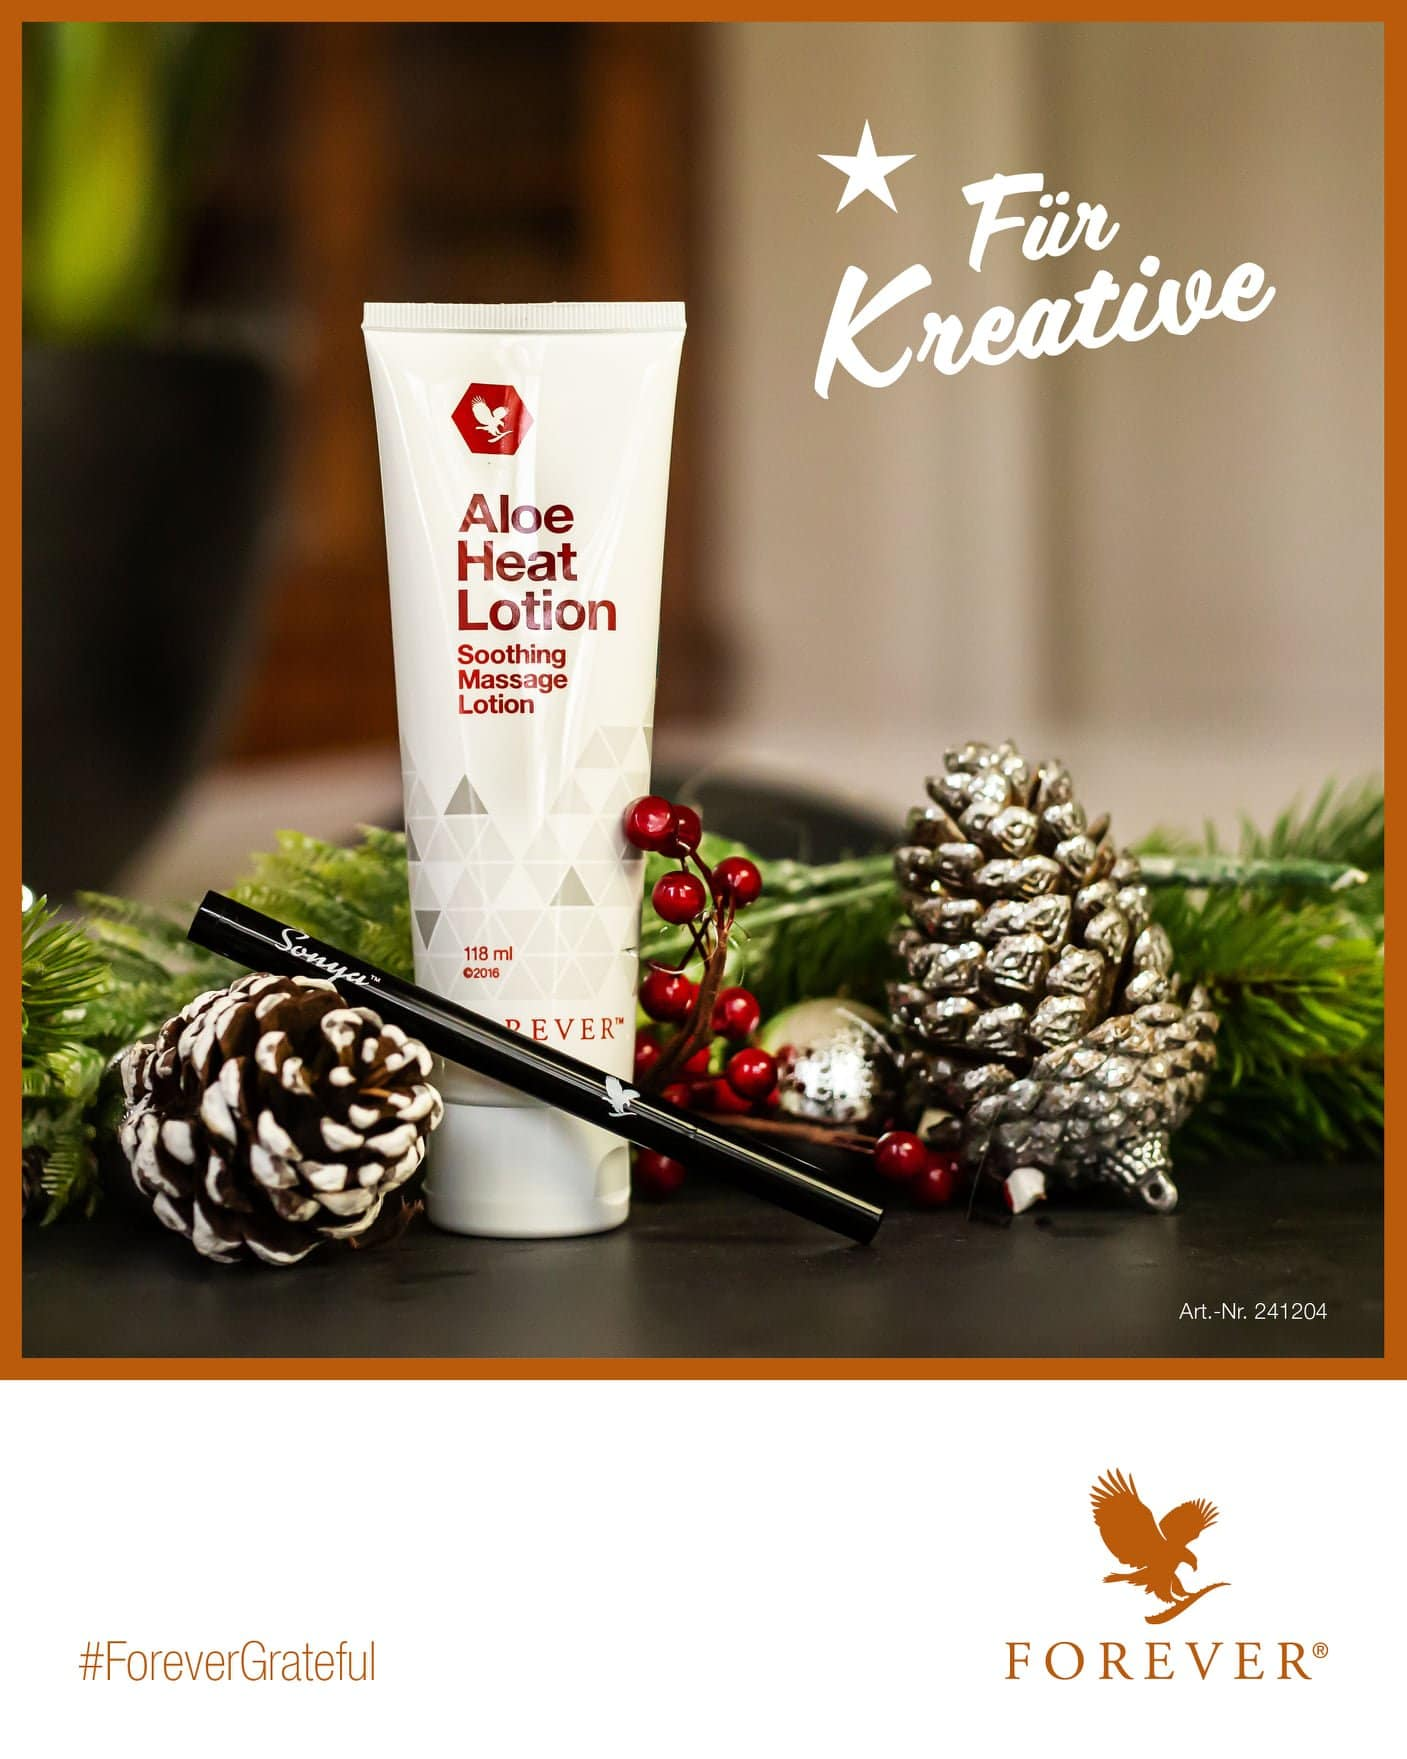 Aloe Heat Lotion Natale